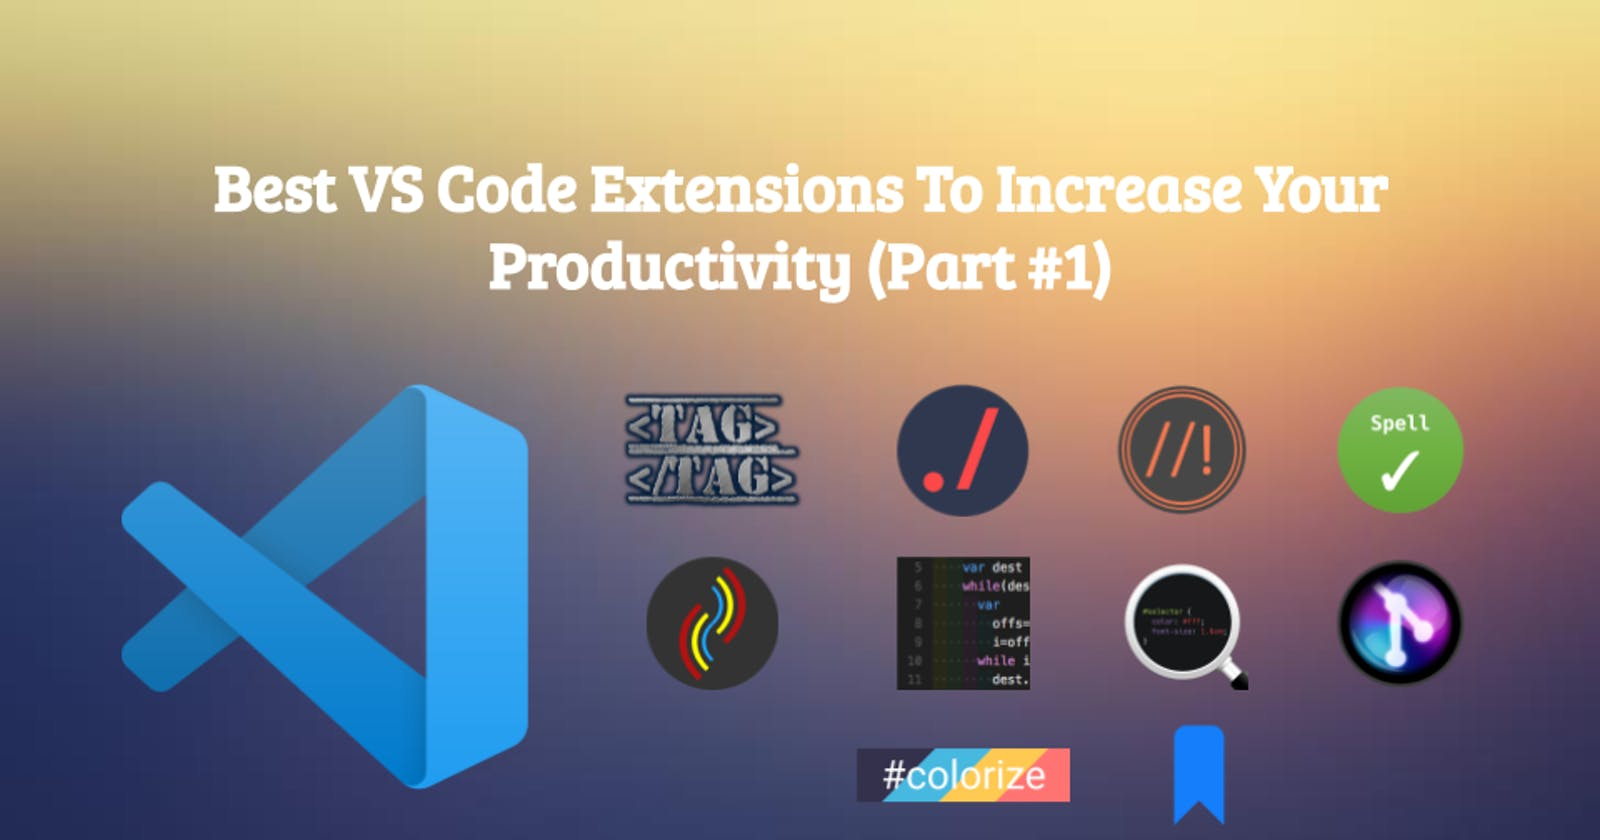 Best VS Code Extensions To Increase Your Productivity (Part #1)